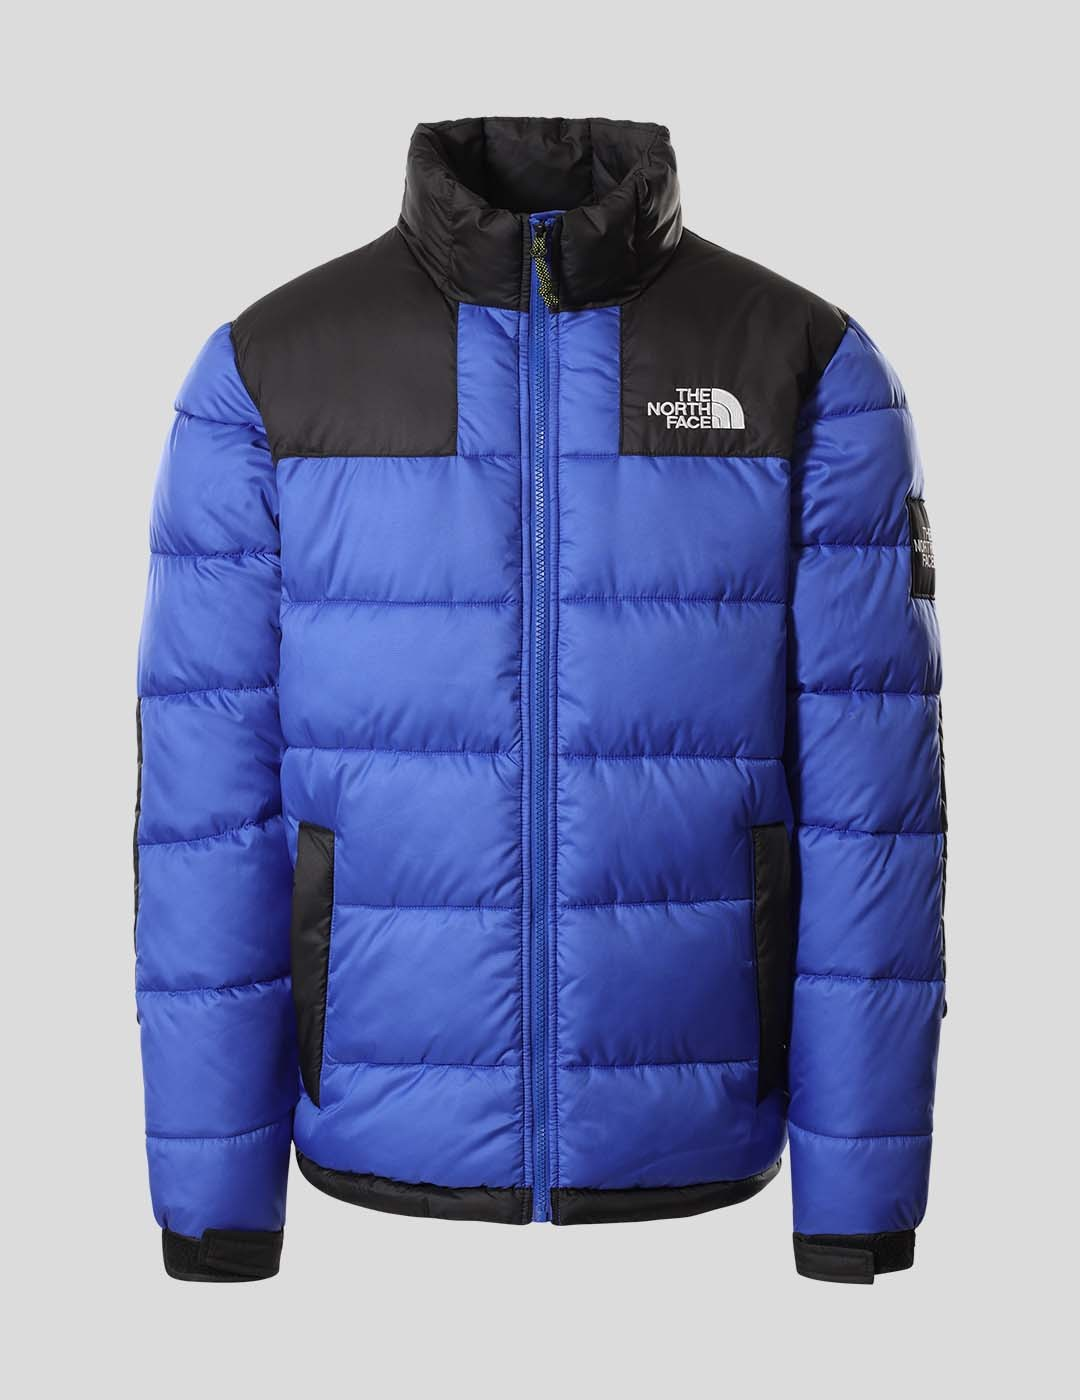 CAZADORA THE NORTH FACE BLACK BOX SEARCH & RESCUE SYNTH INS JACKET TNF BLUE